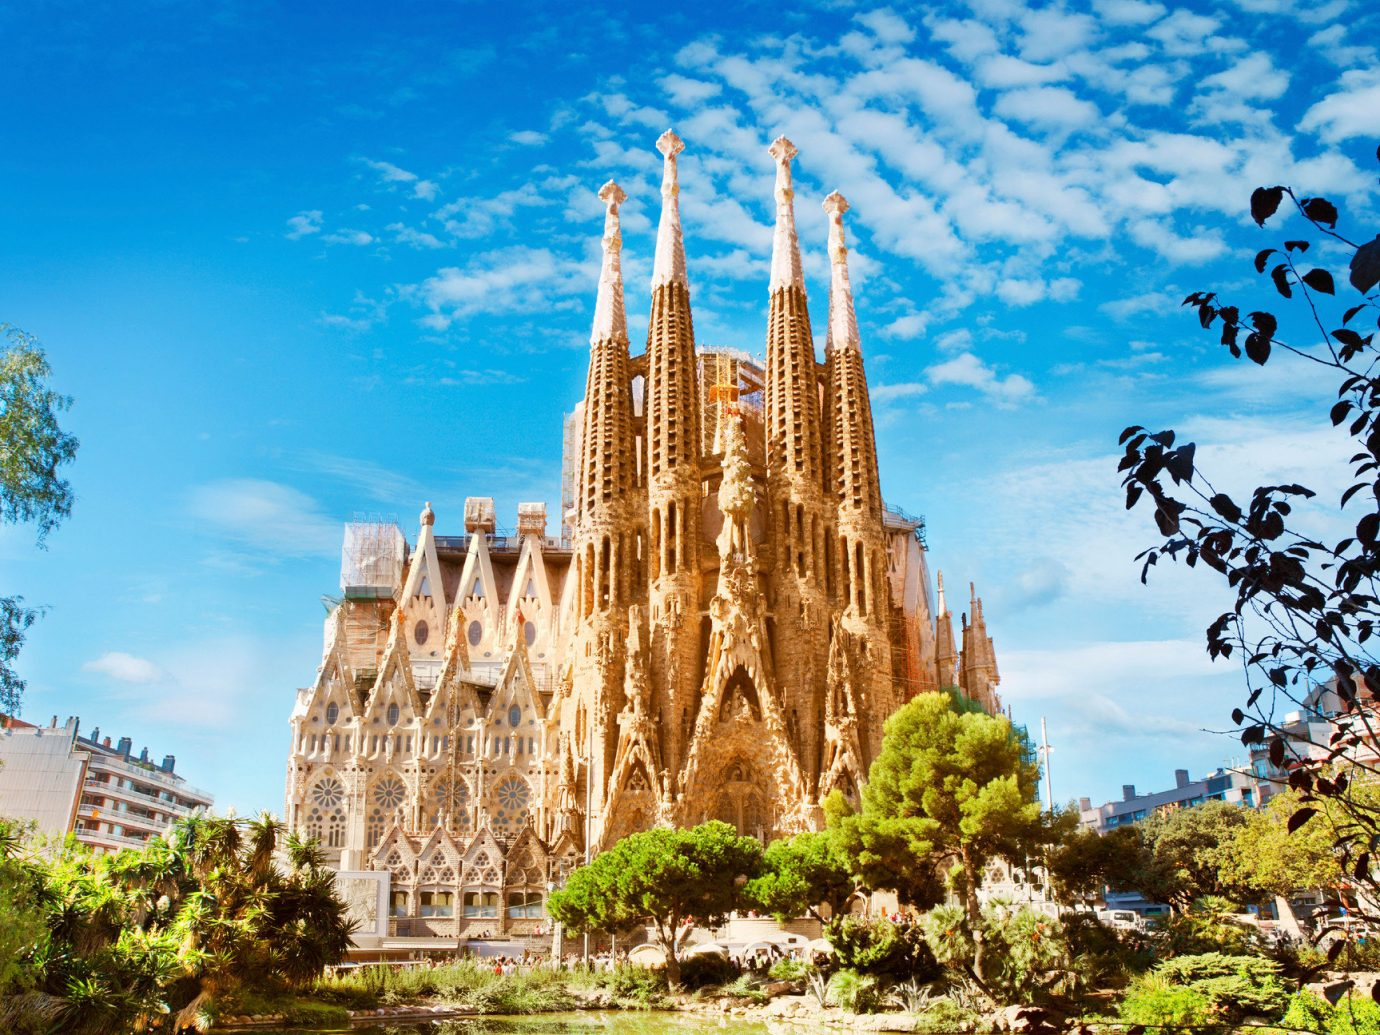 News Trip Ideas tree outdoor sky landmark historic site building tourism park flower place of worship temple tower cathedral Ruins